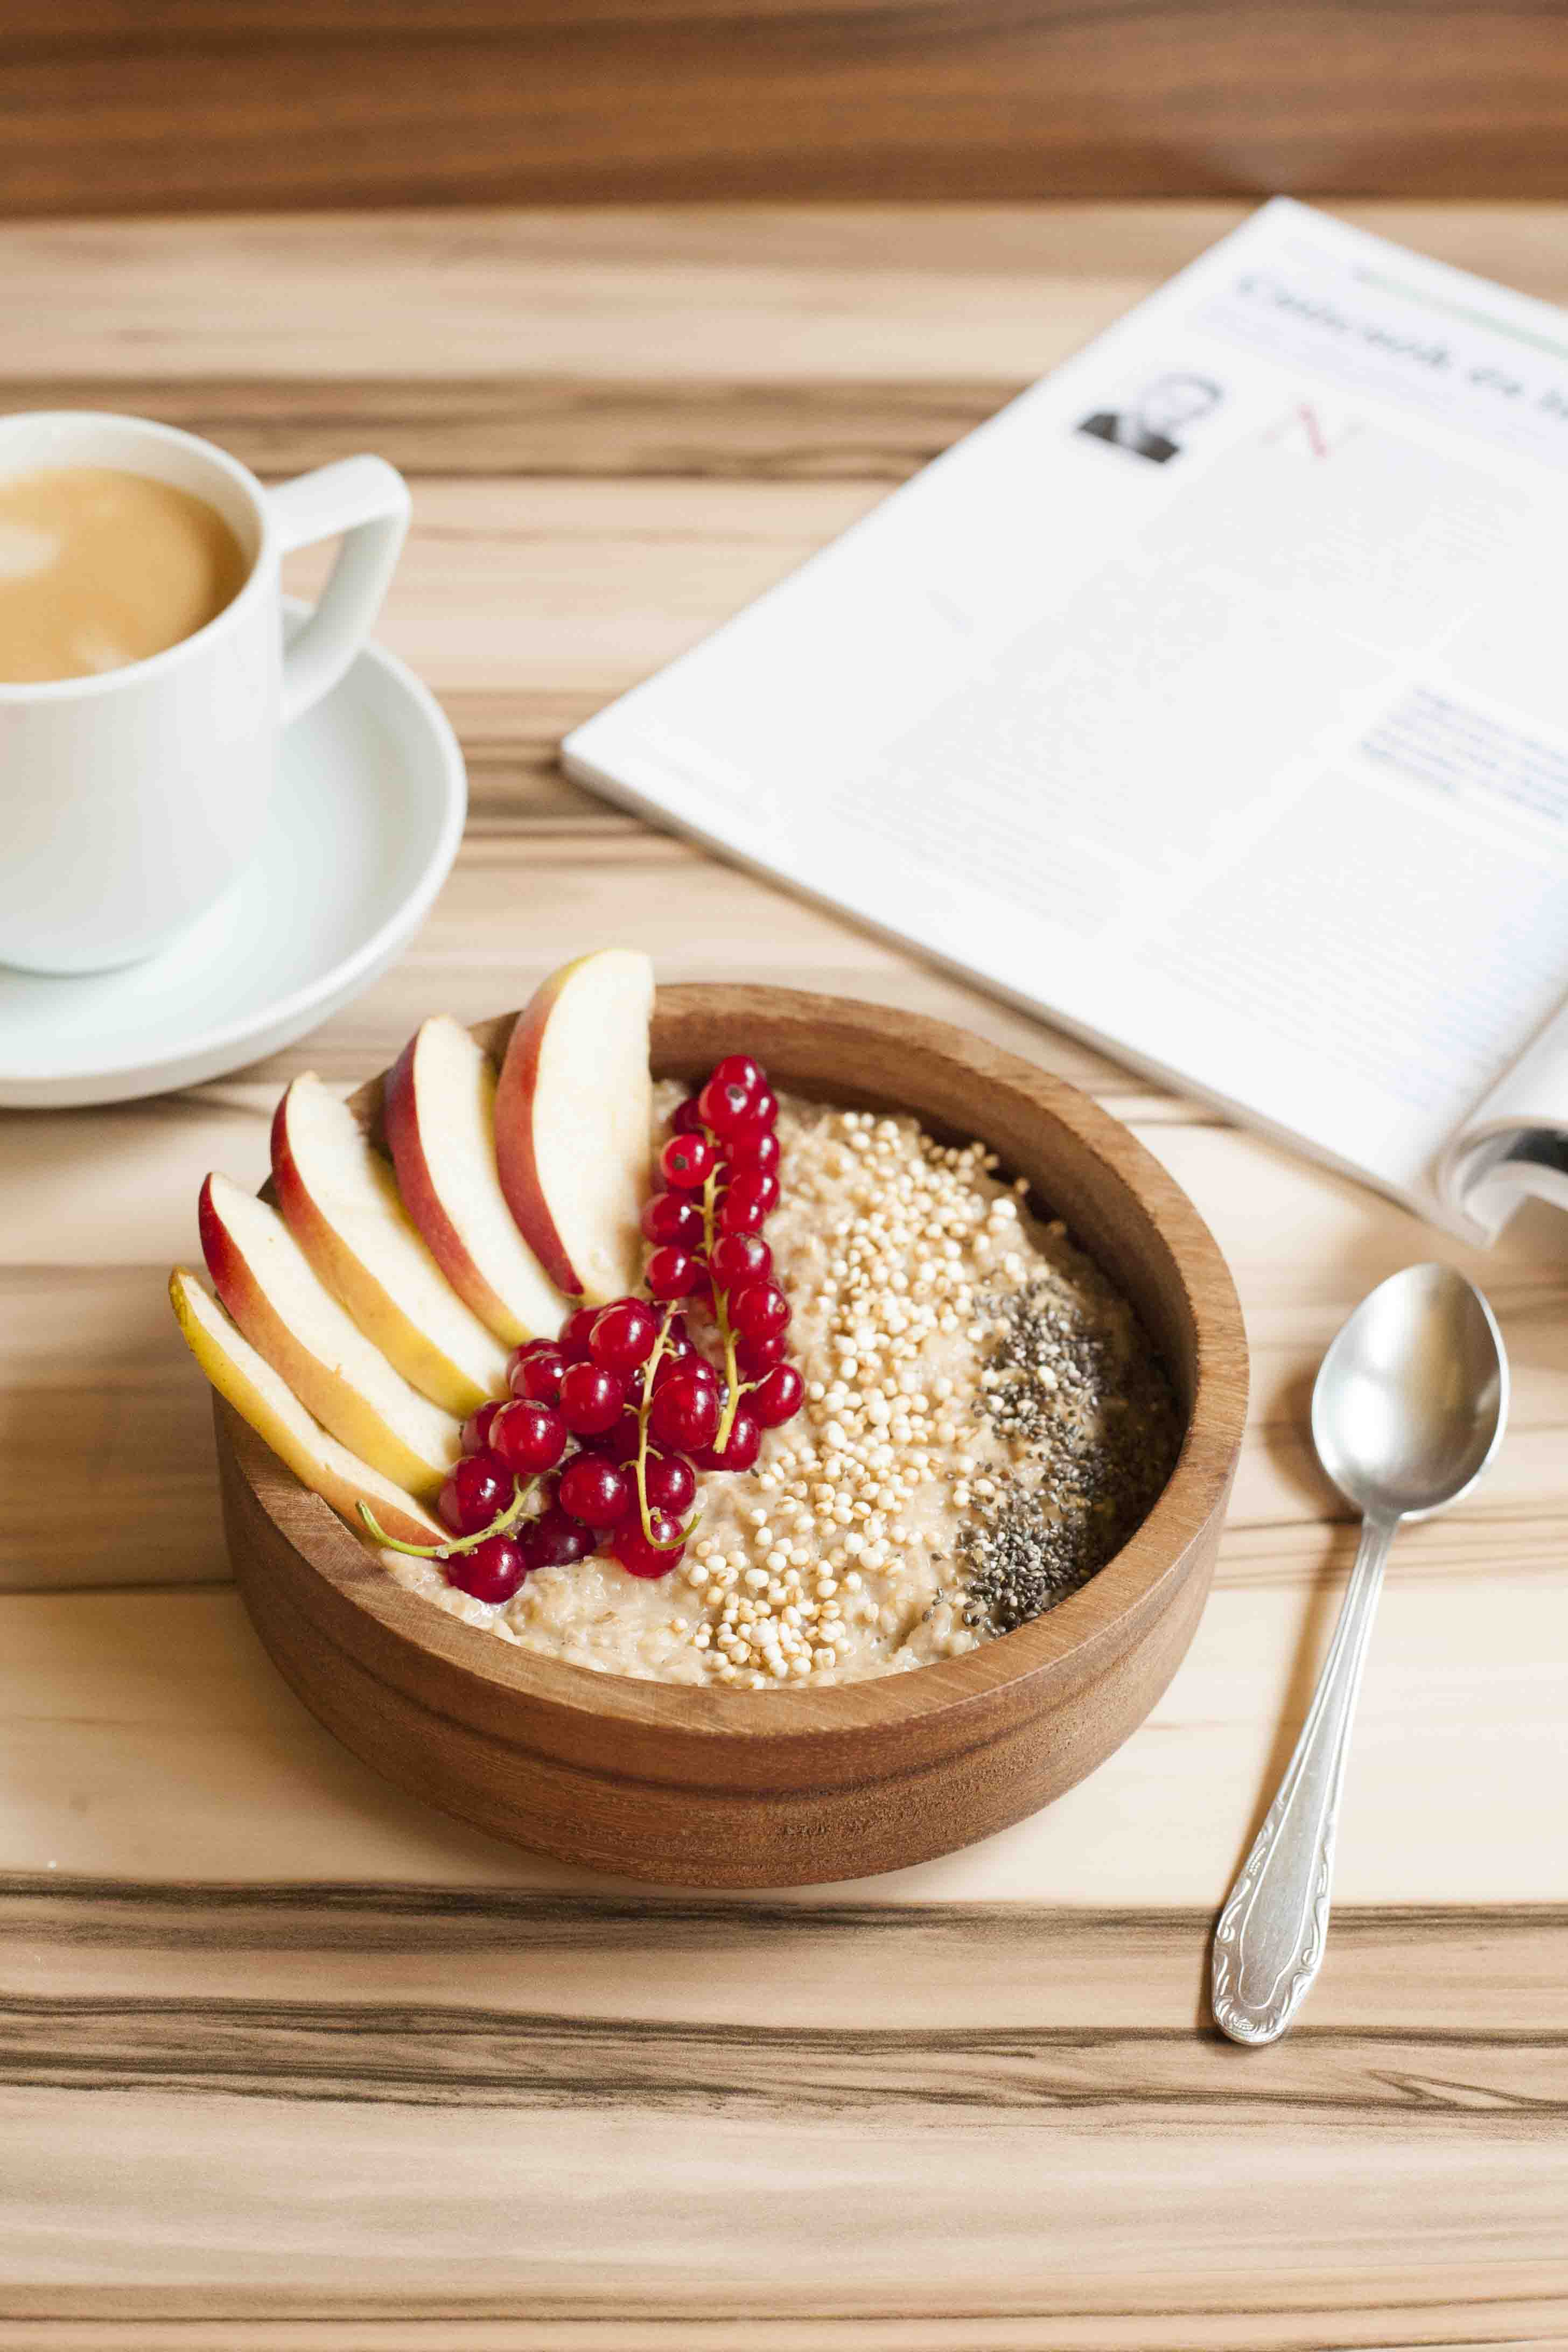 Bowl of Vegan Apple Cinnamon Oatmeal made on stove top - topped with apple slices, red currant, chia seeds and puffed quinoa